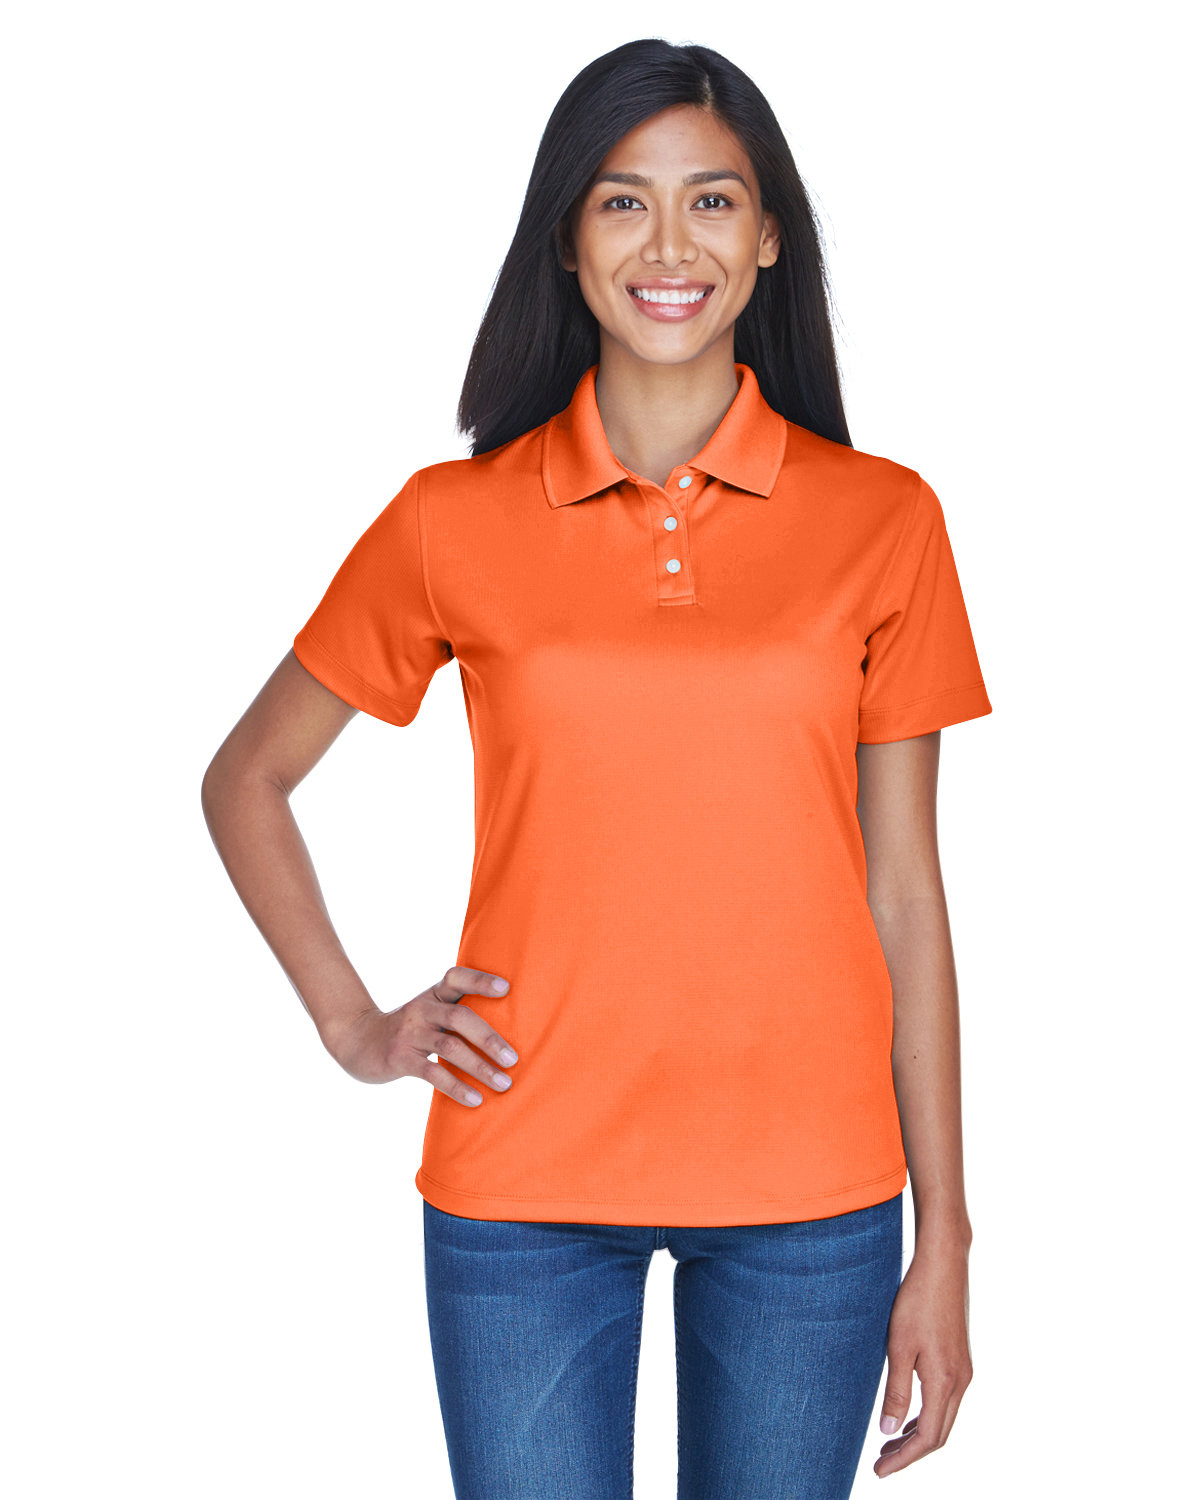 UltraClub Ladies' Cool & Dry Stain-Release Performance Polo ORANGE